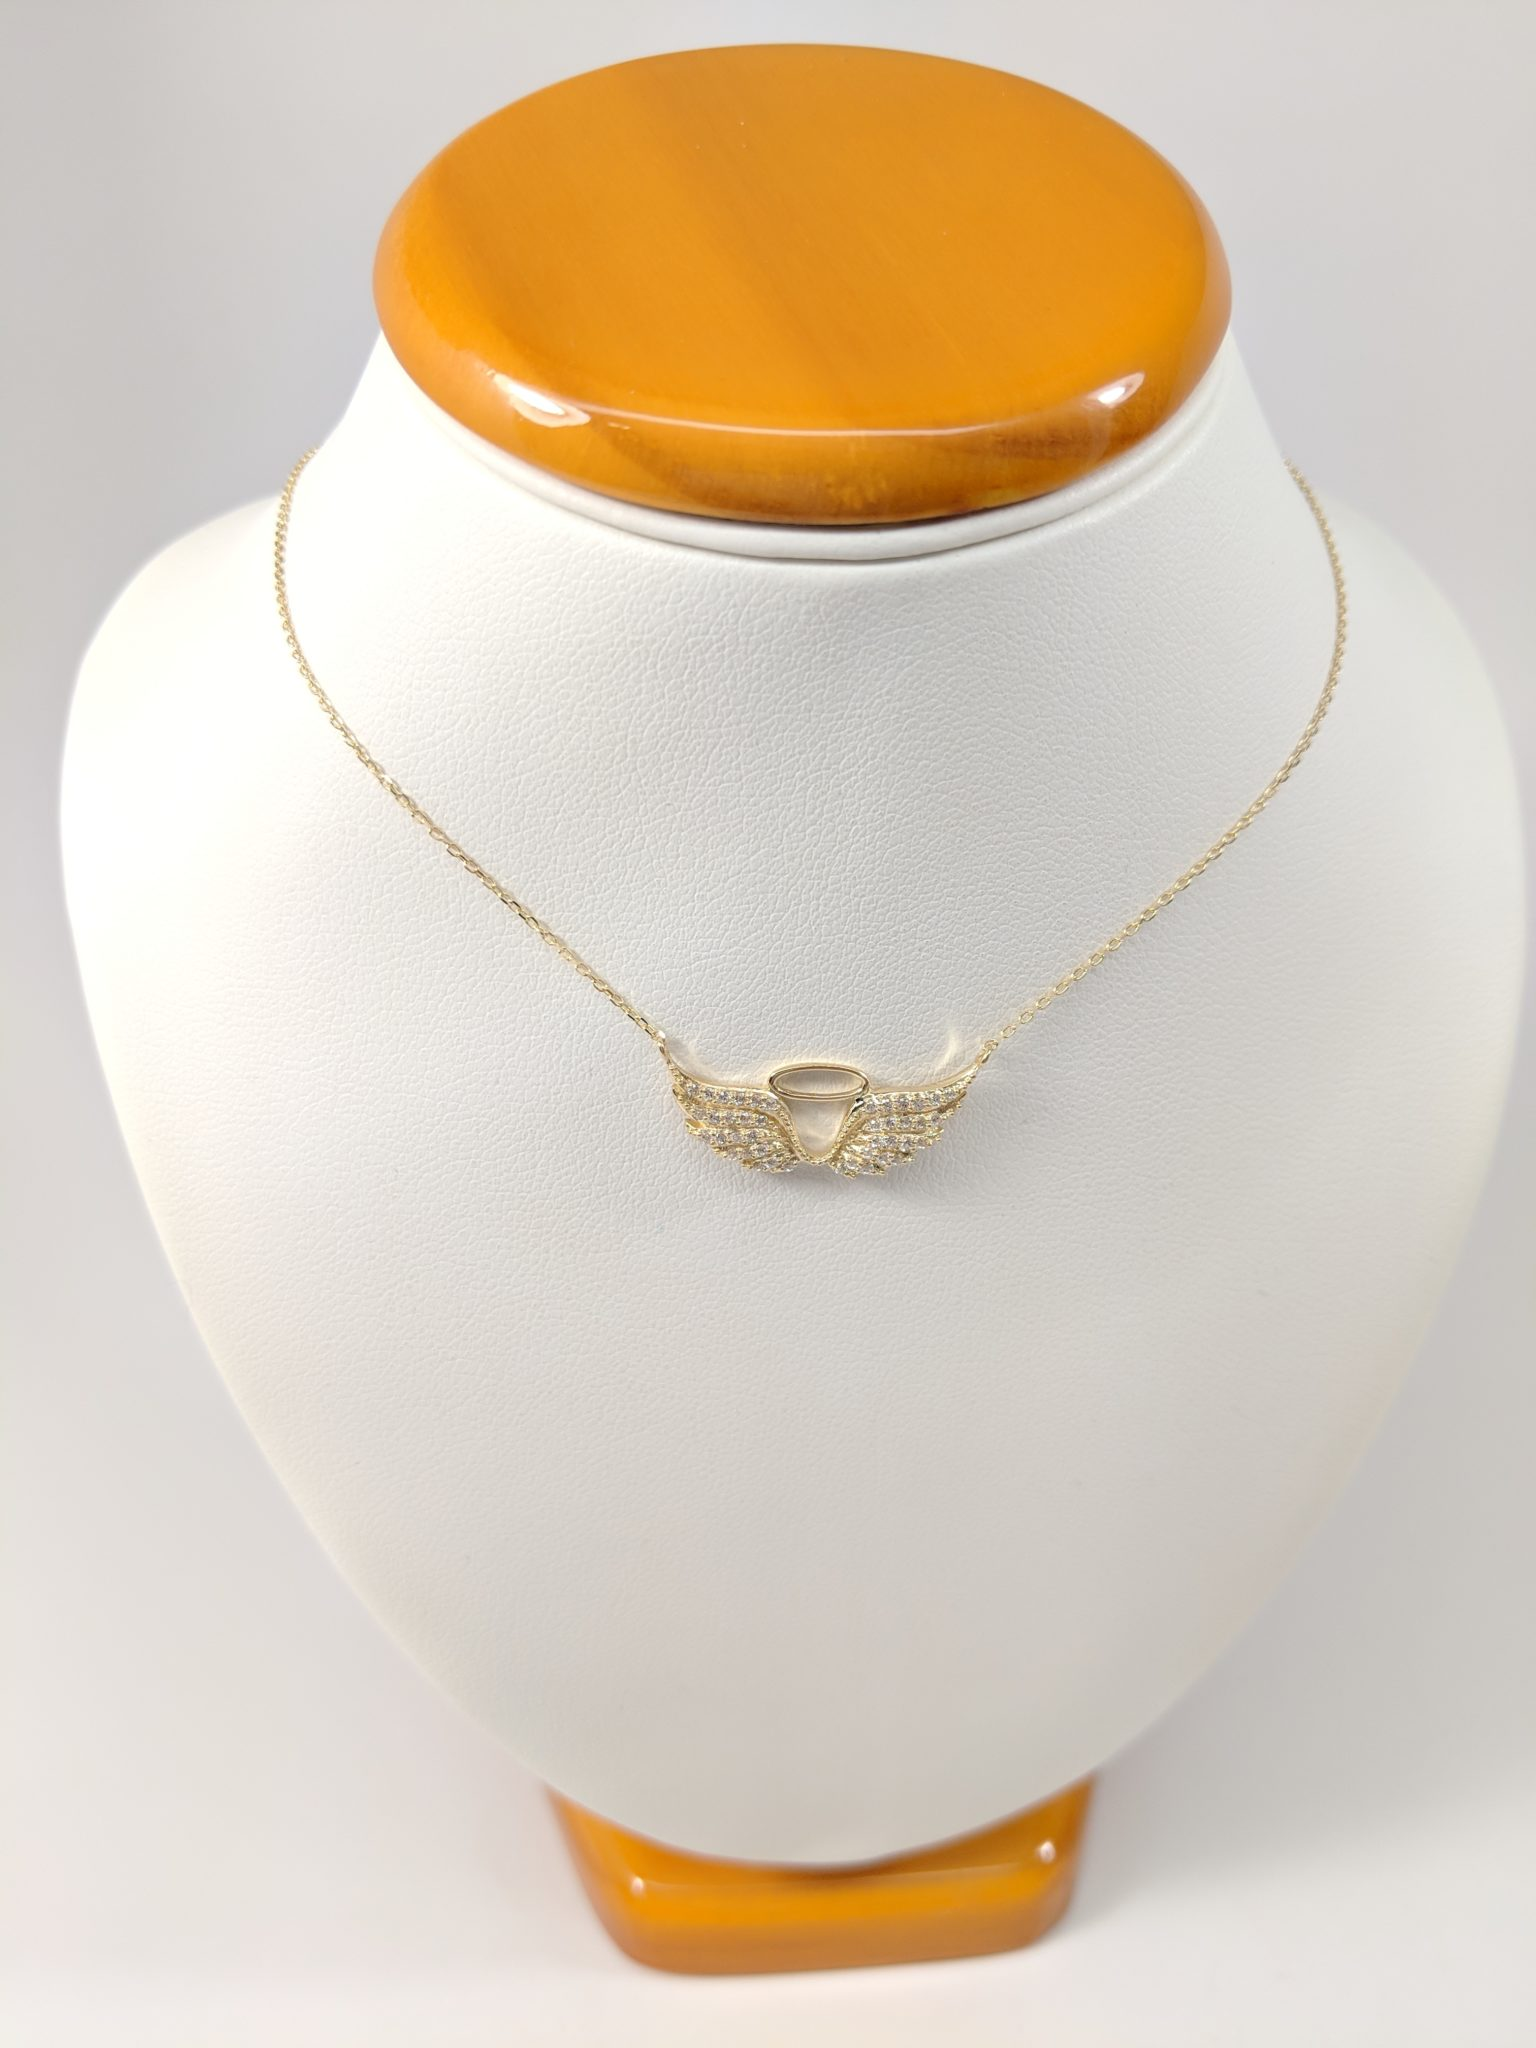 14K Yellow White Gold Angel Wings with Halo Necklace Pendant Set on Neck Piece